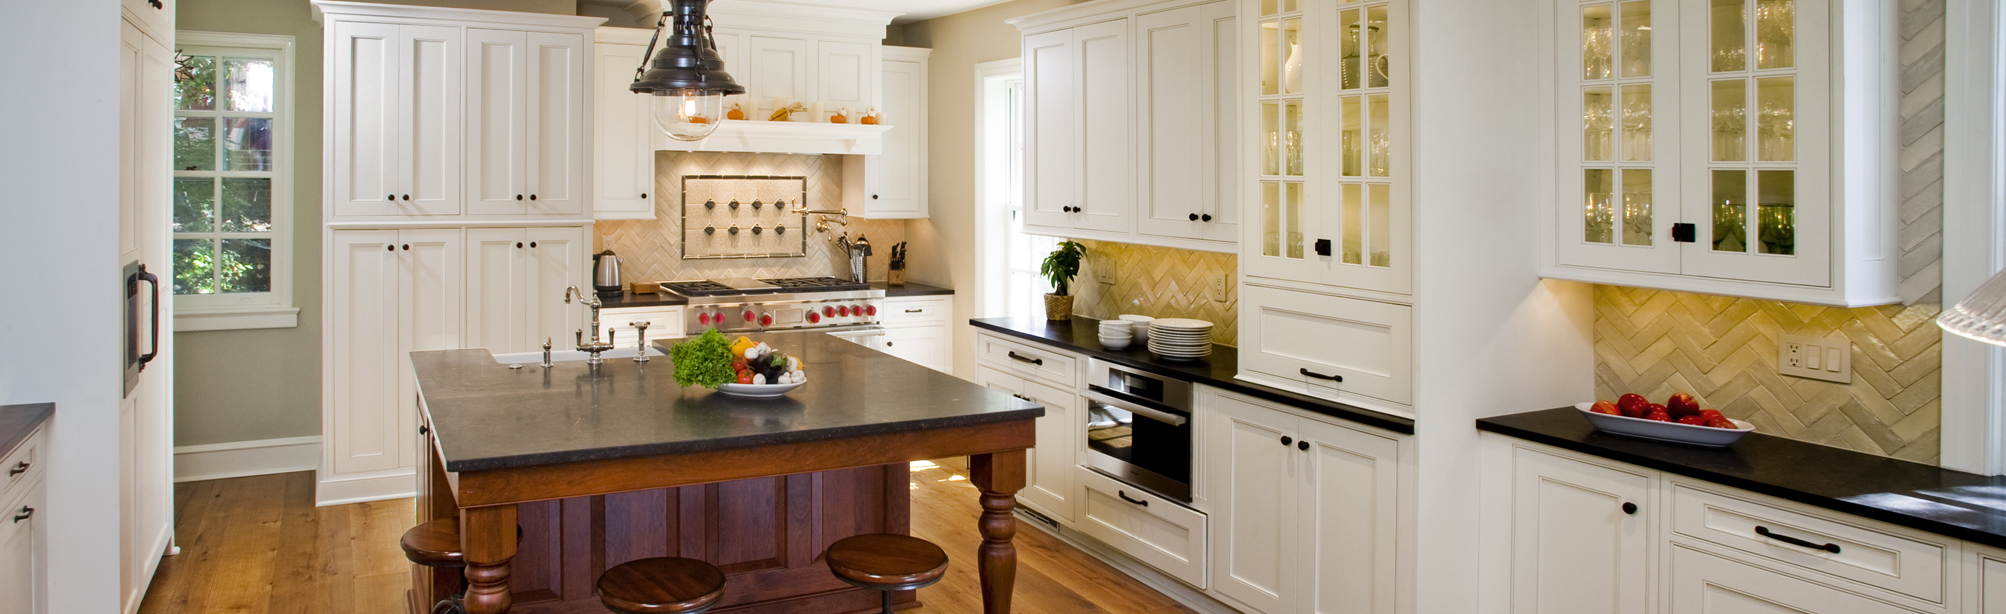 white-cabinets-Kitchen-Remodeling